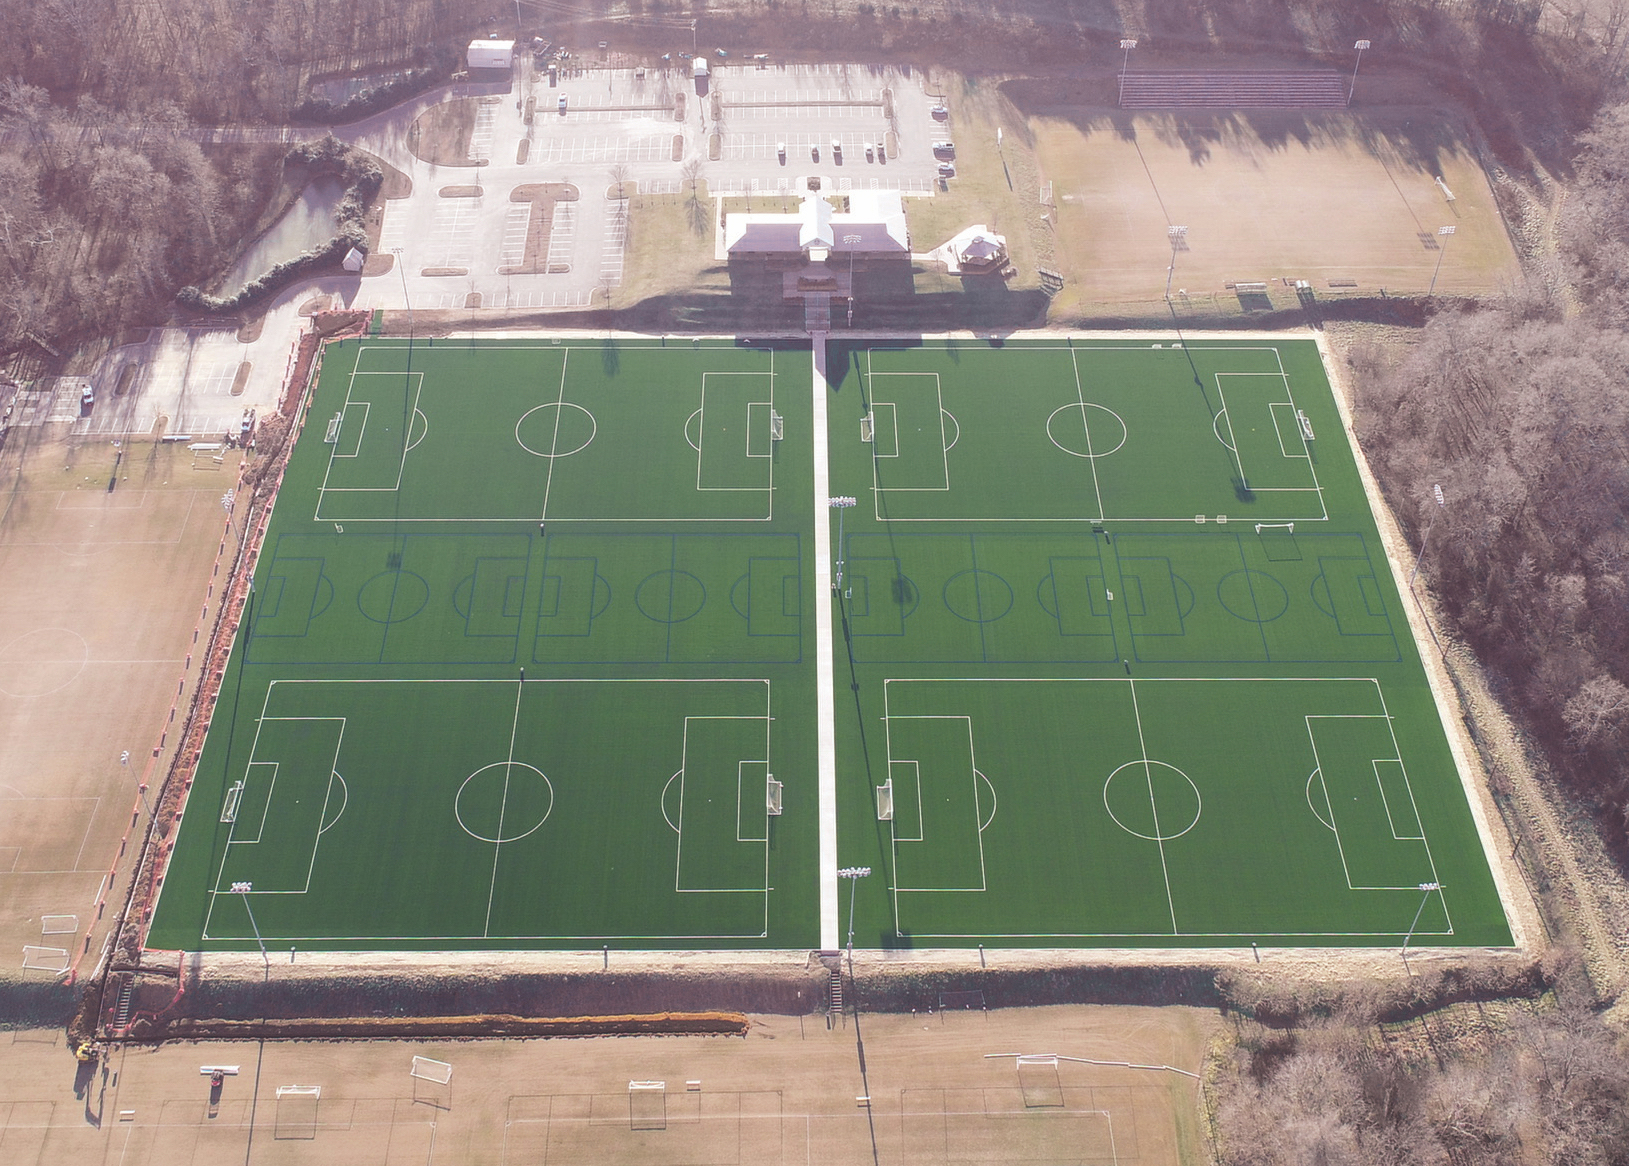 TWIN CITY YOUTH SOCCER ASSOCIATION SELECTS HELLAS MATRIX REAL M TURF FOR BB&T SPORTS PARK